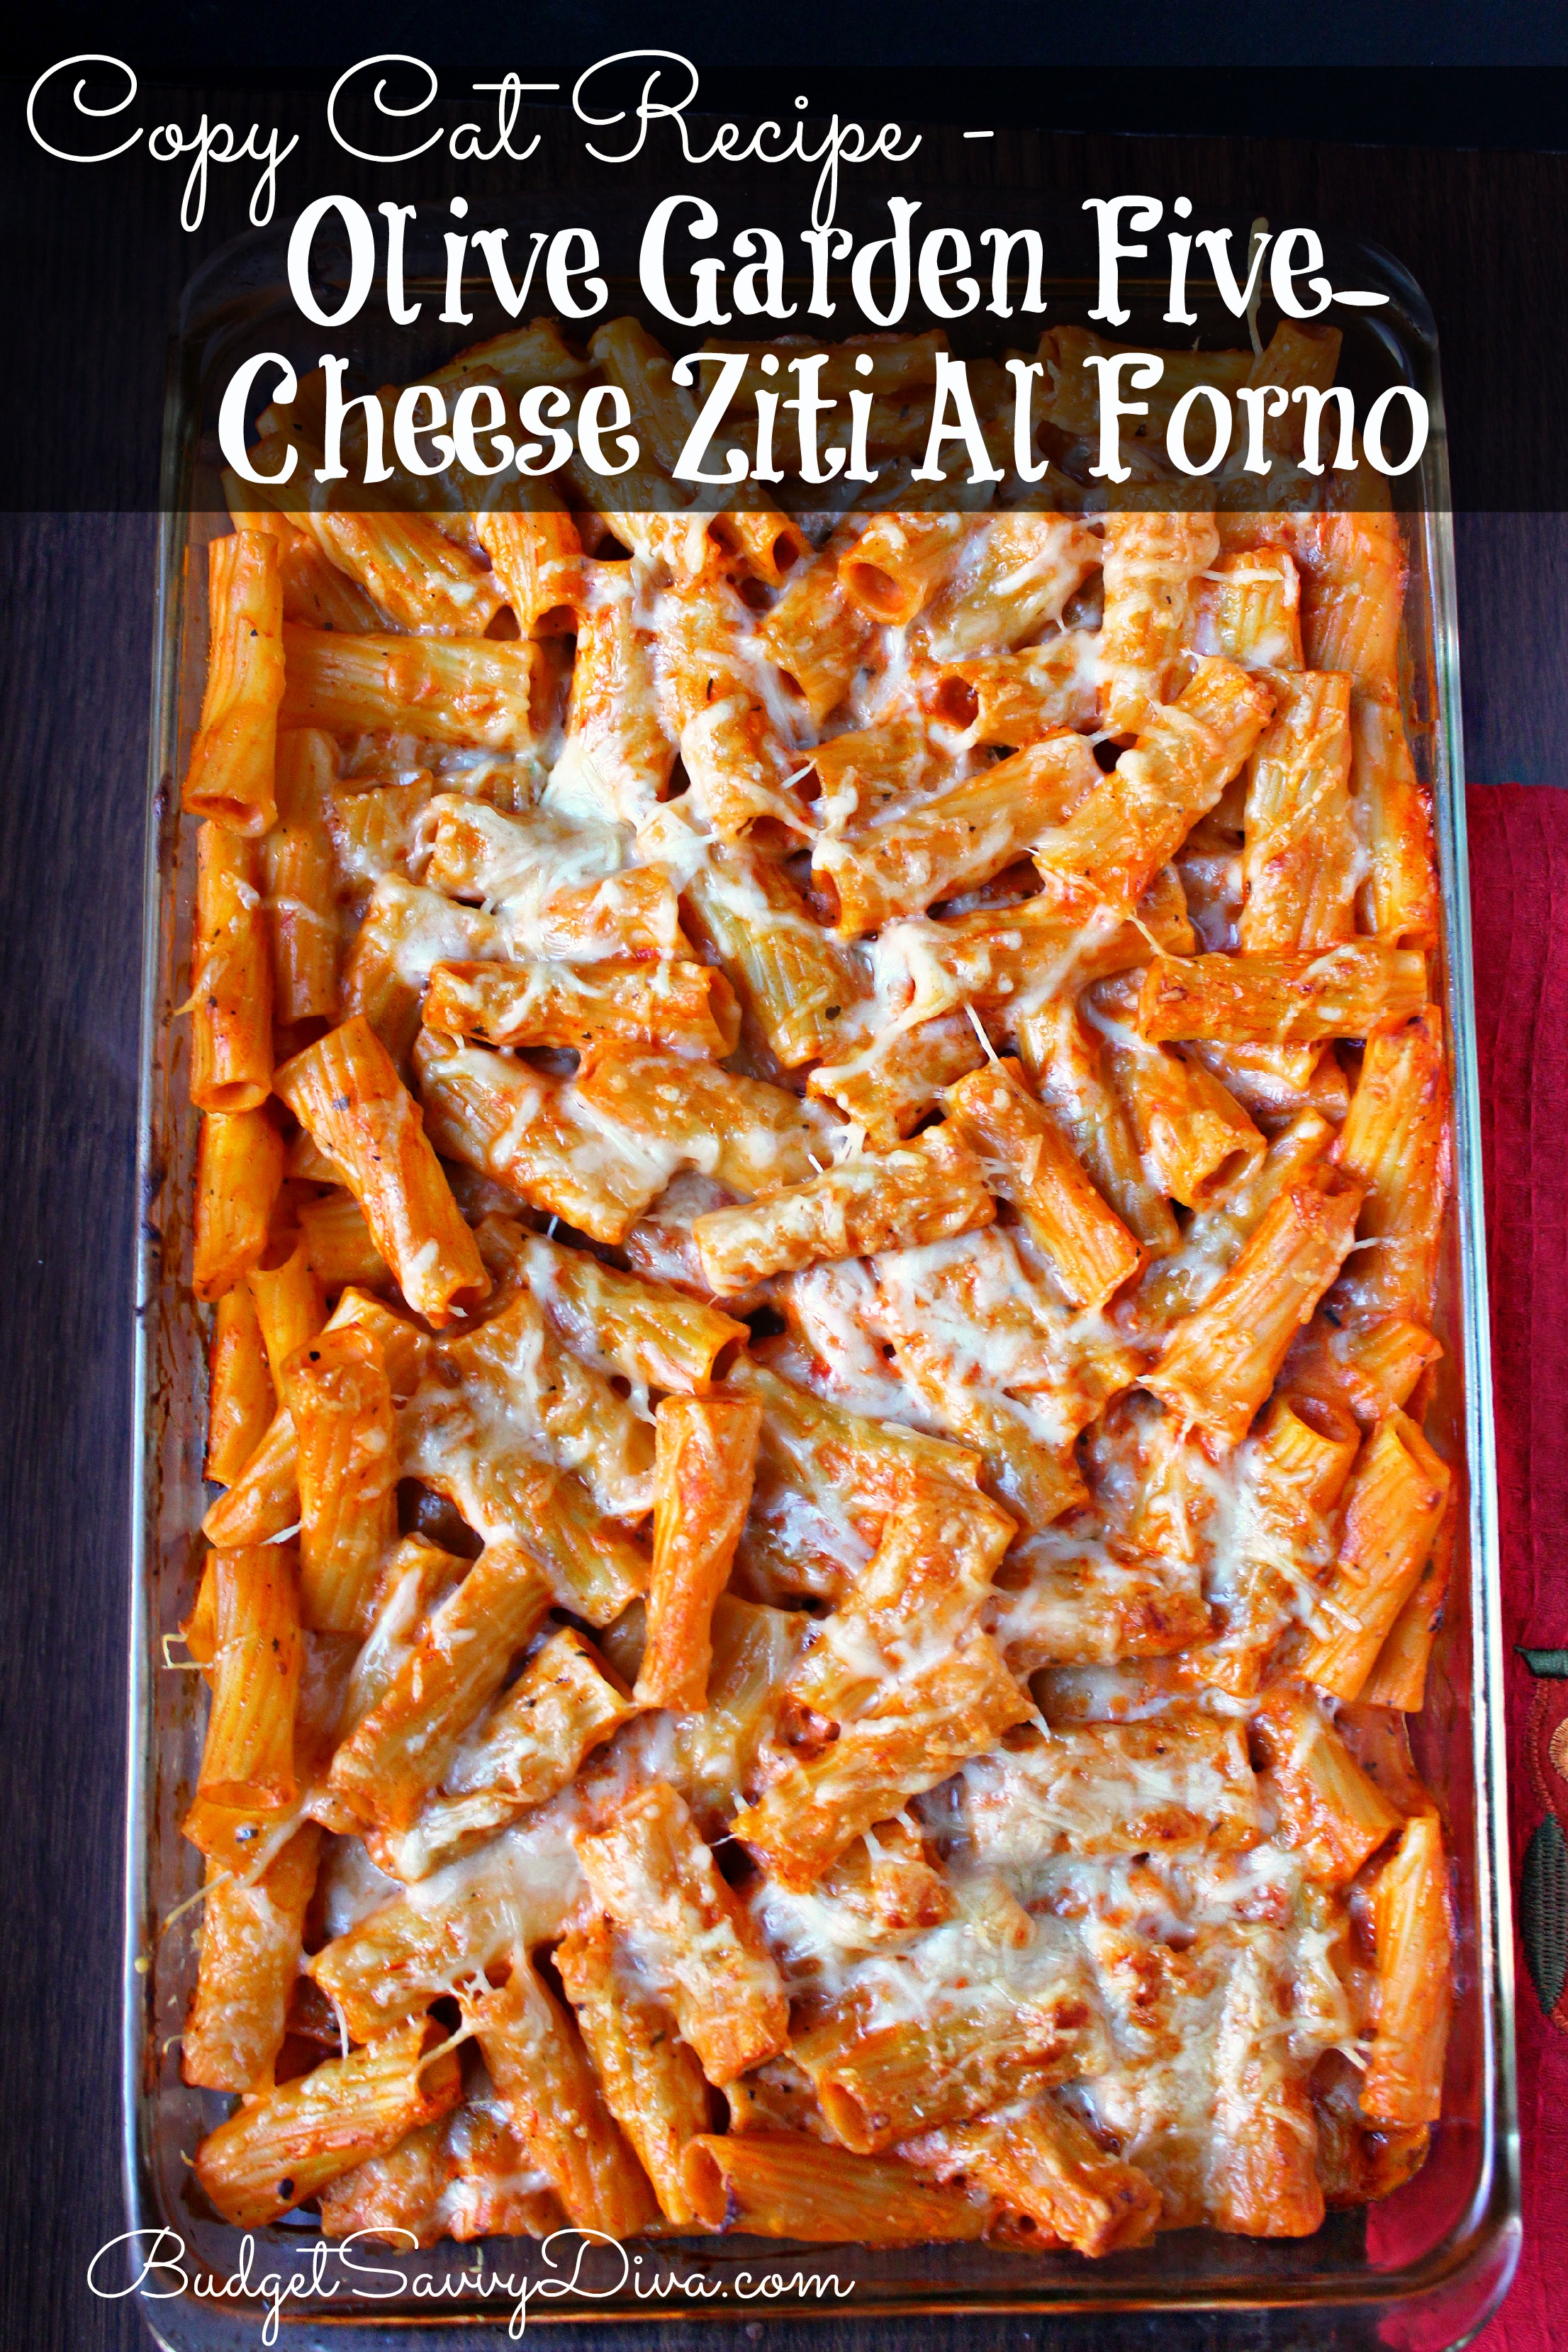 Copy Cat Recipe Olive Garden Five Cheese Ziti Al Forno